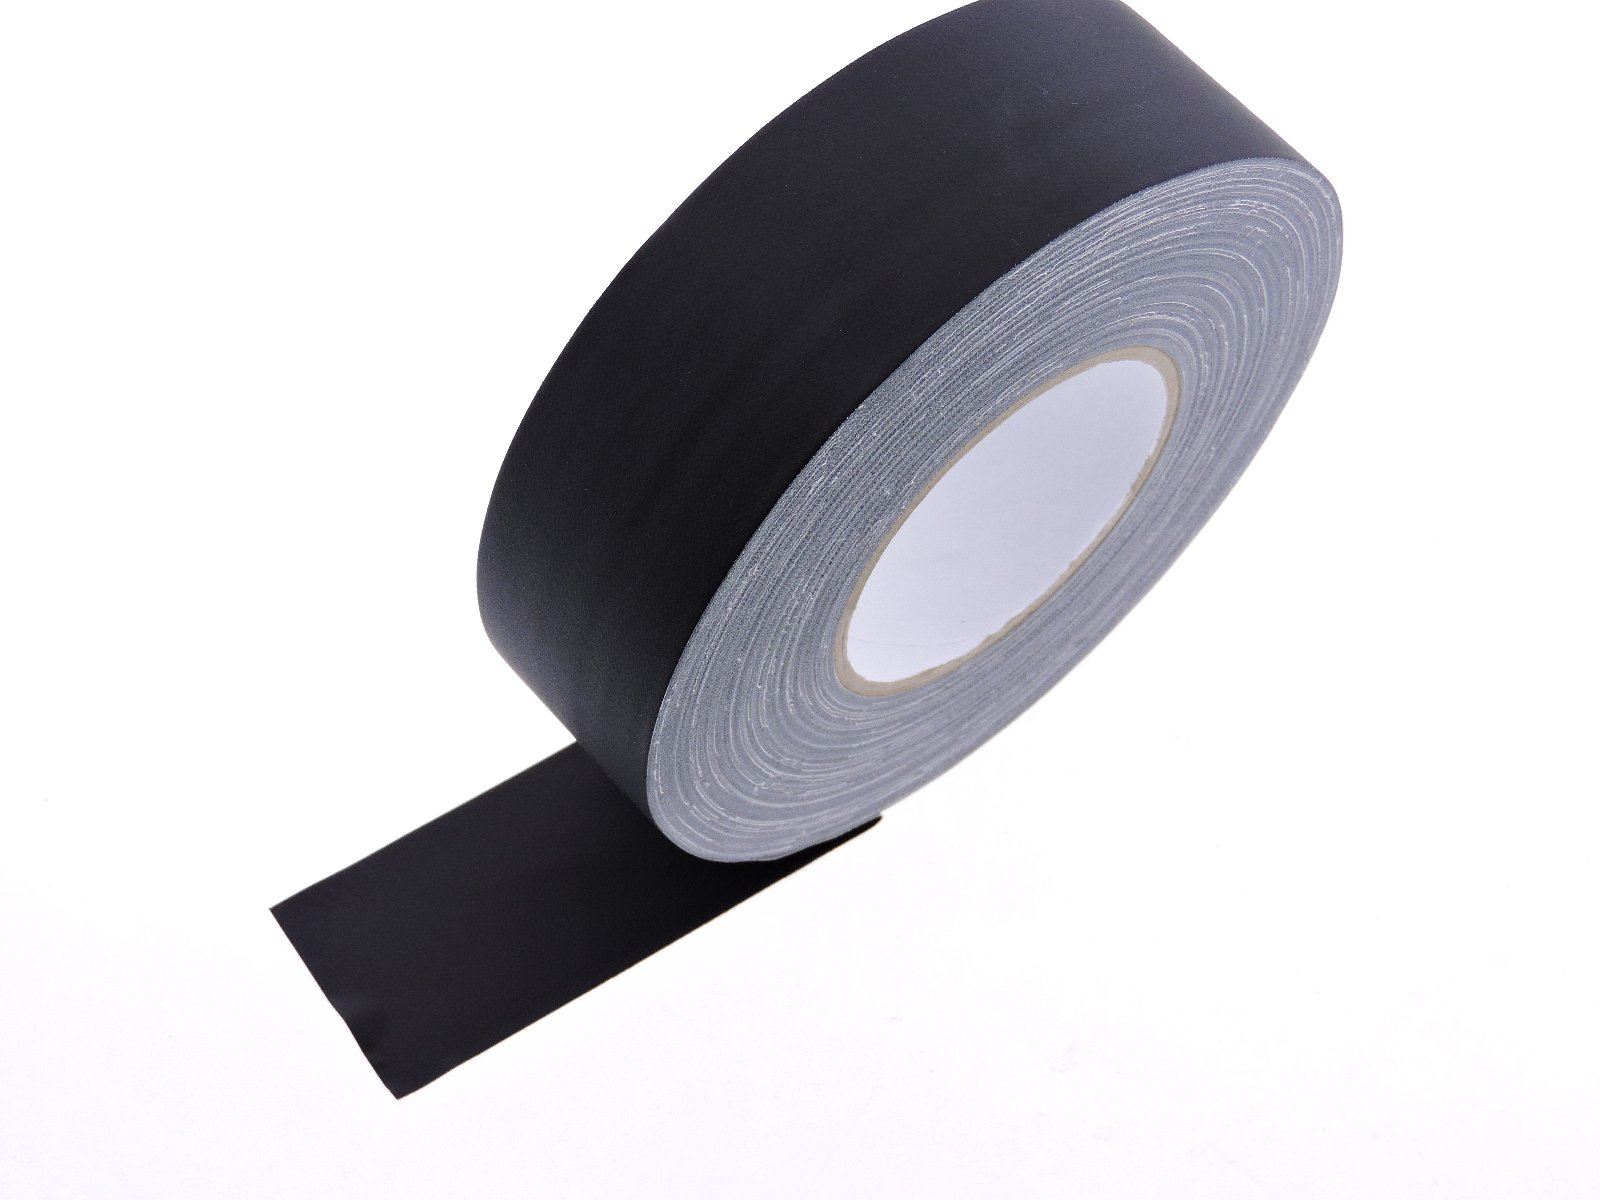 2'' x 60 yd Black Gaffers Tape HEAVY 12.8 Mil Smooth Matte Finish PRO Floor Stage Gaff Tape Audio Video Theater Cloth Reinforced Rubber Adhesive Removable High Traffic No Residue 48MM X 55M